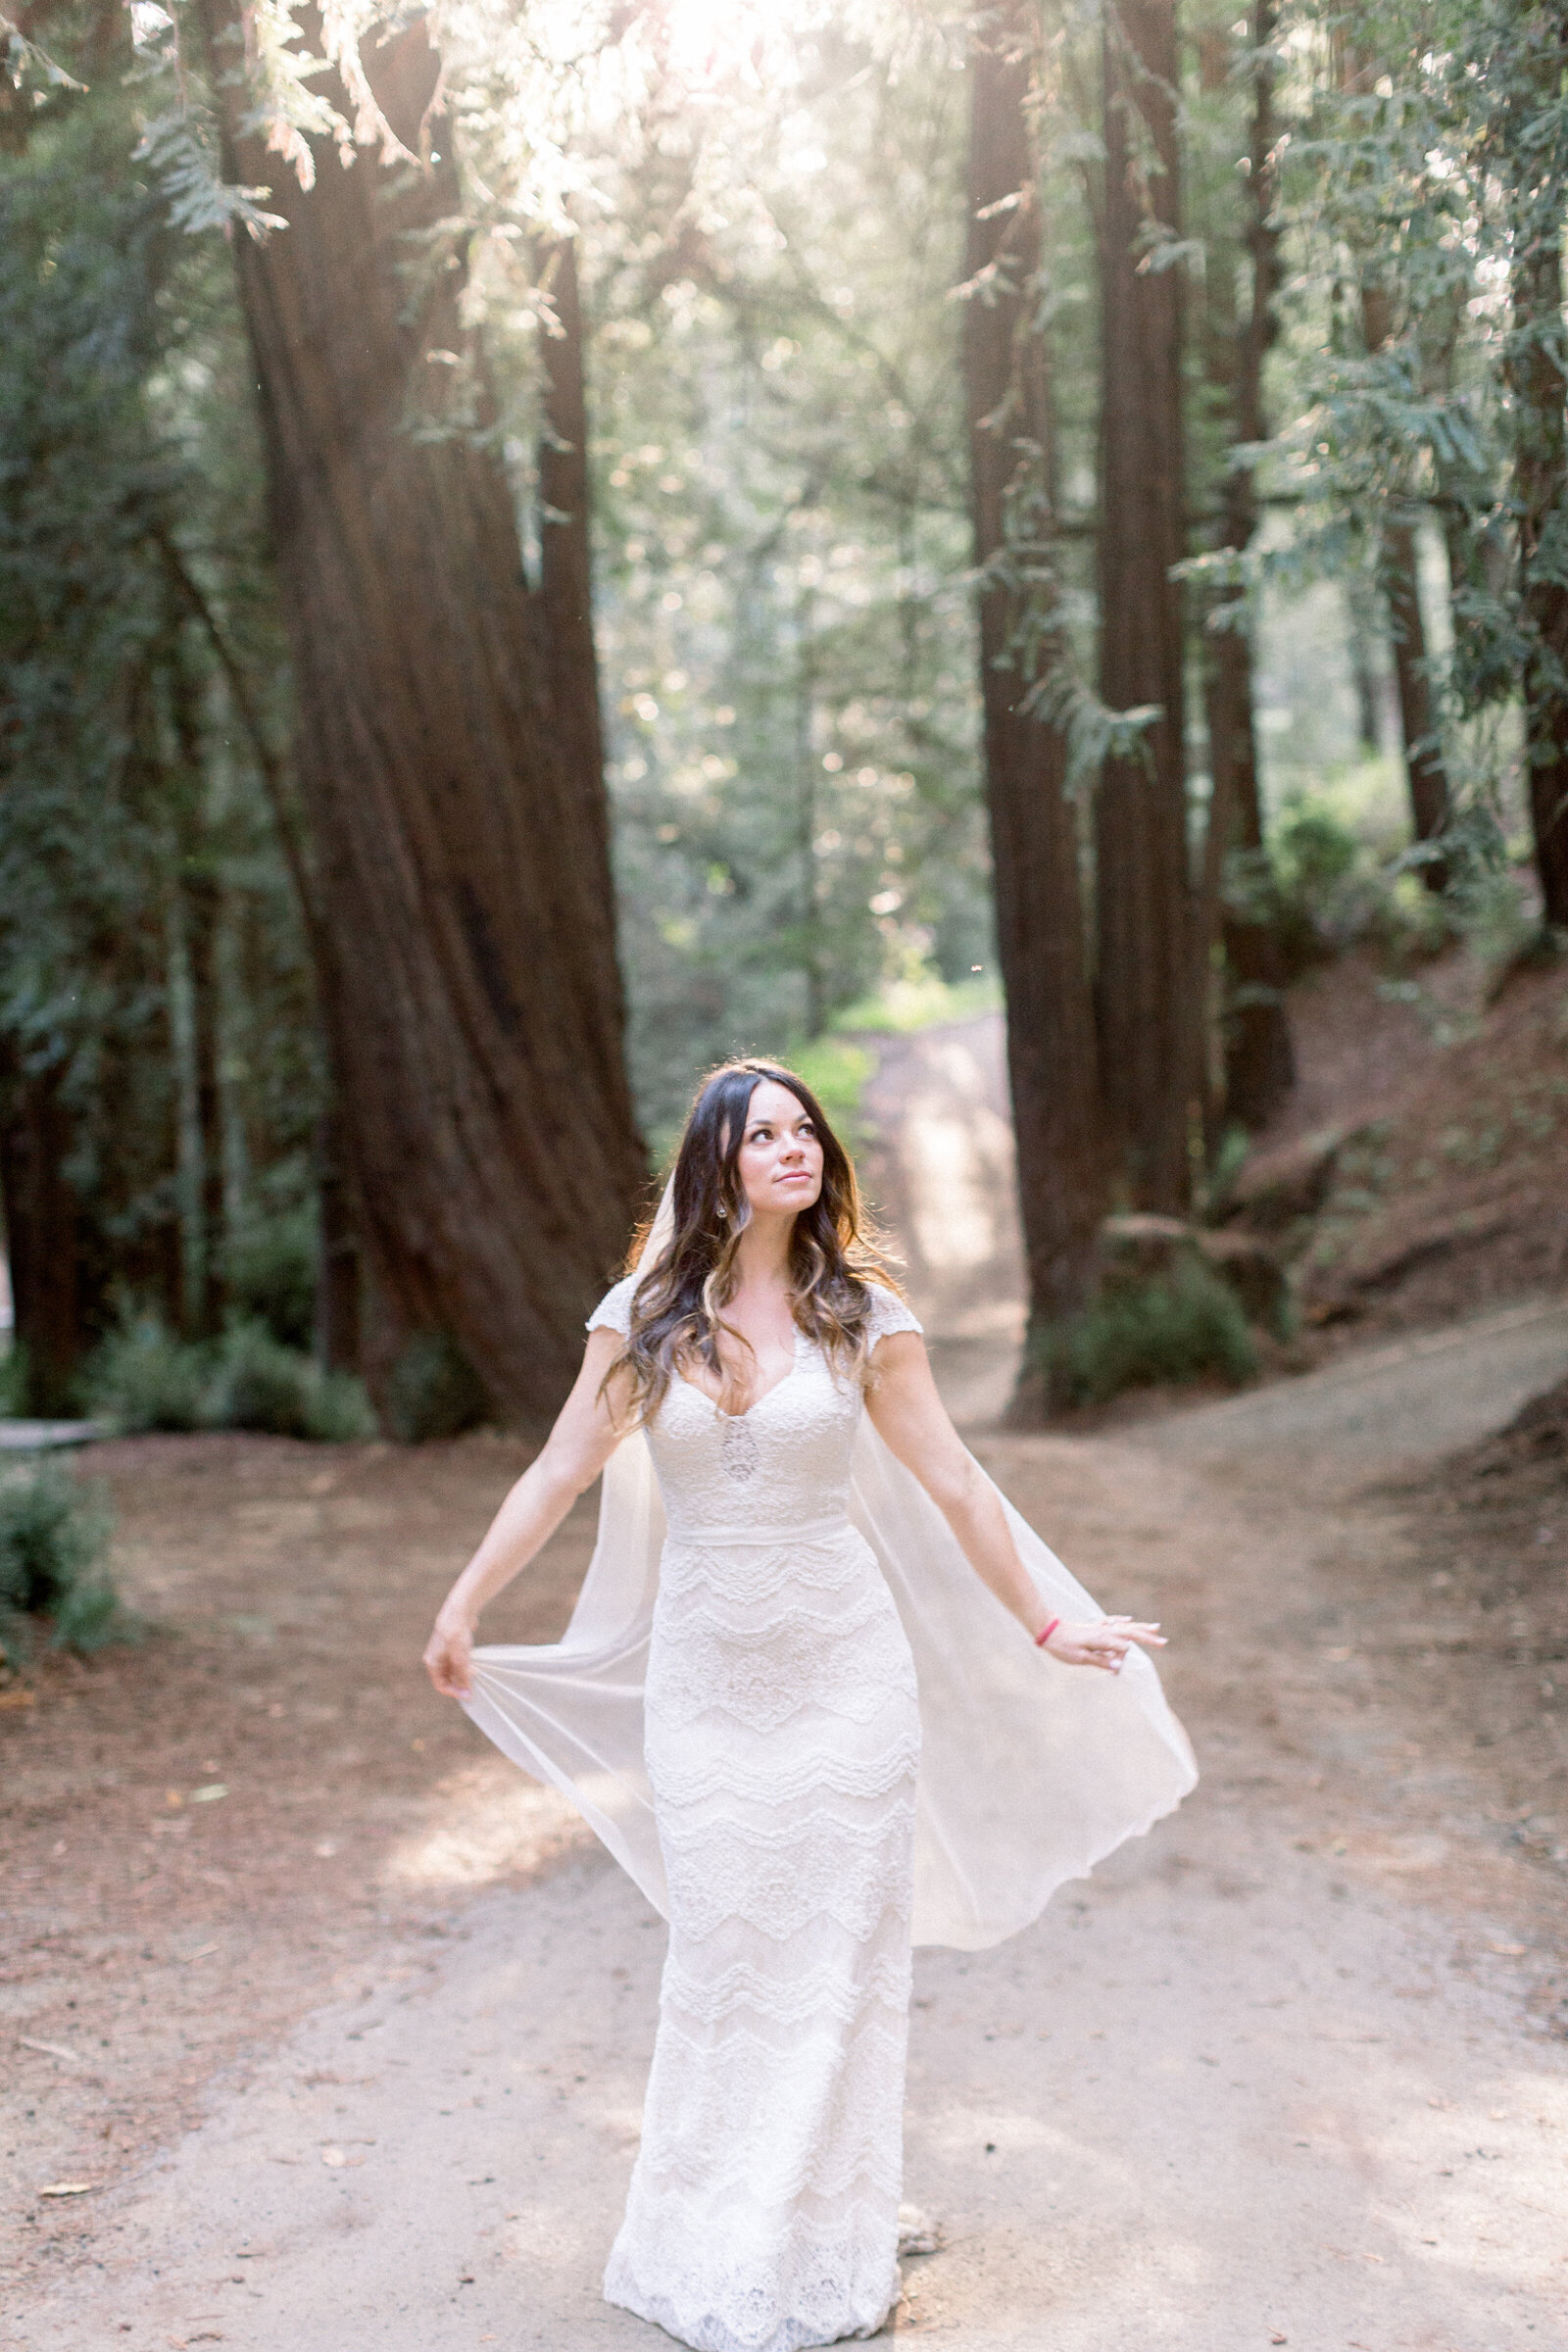 larissa-cleveland-elope-eleopement-intimate-wedding-photographer-san-francisco-napa-carmel-057